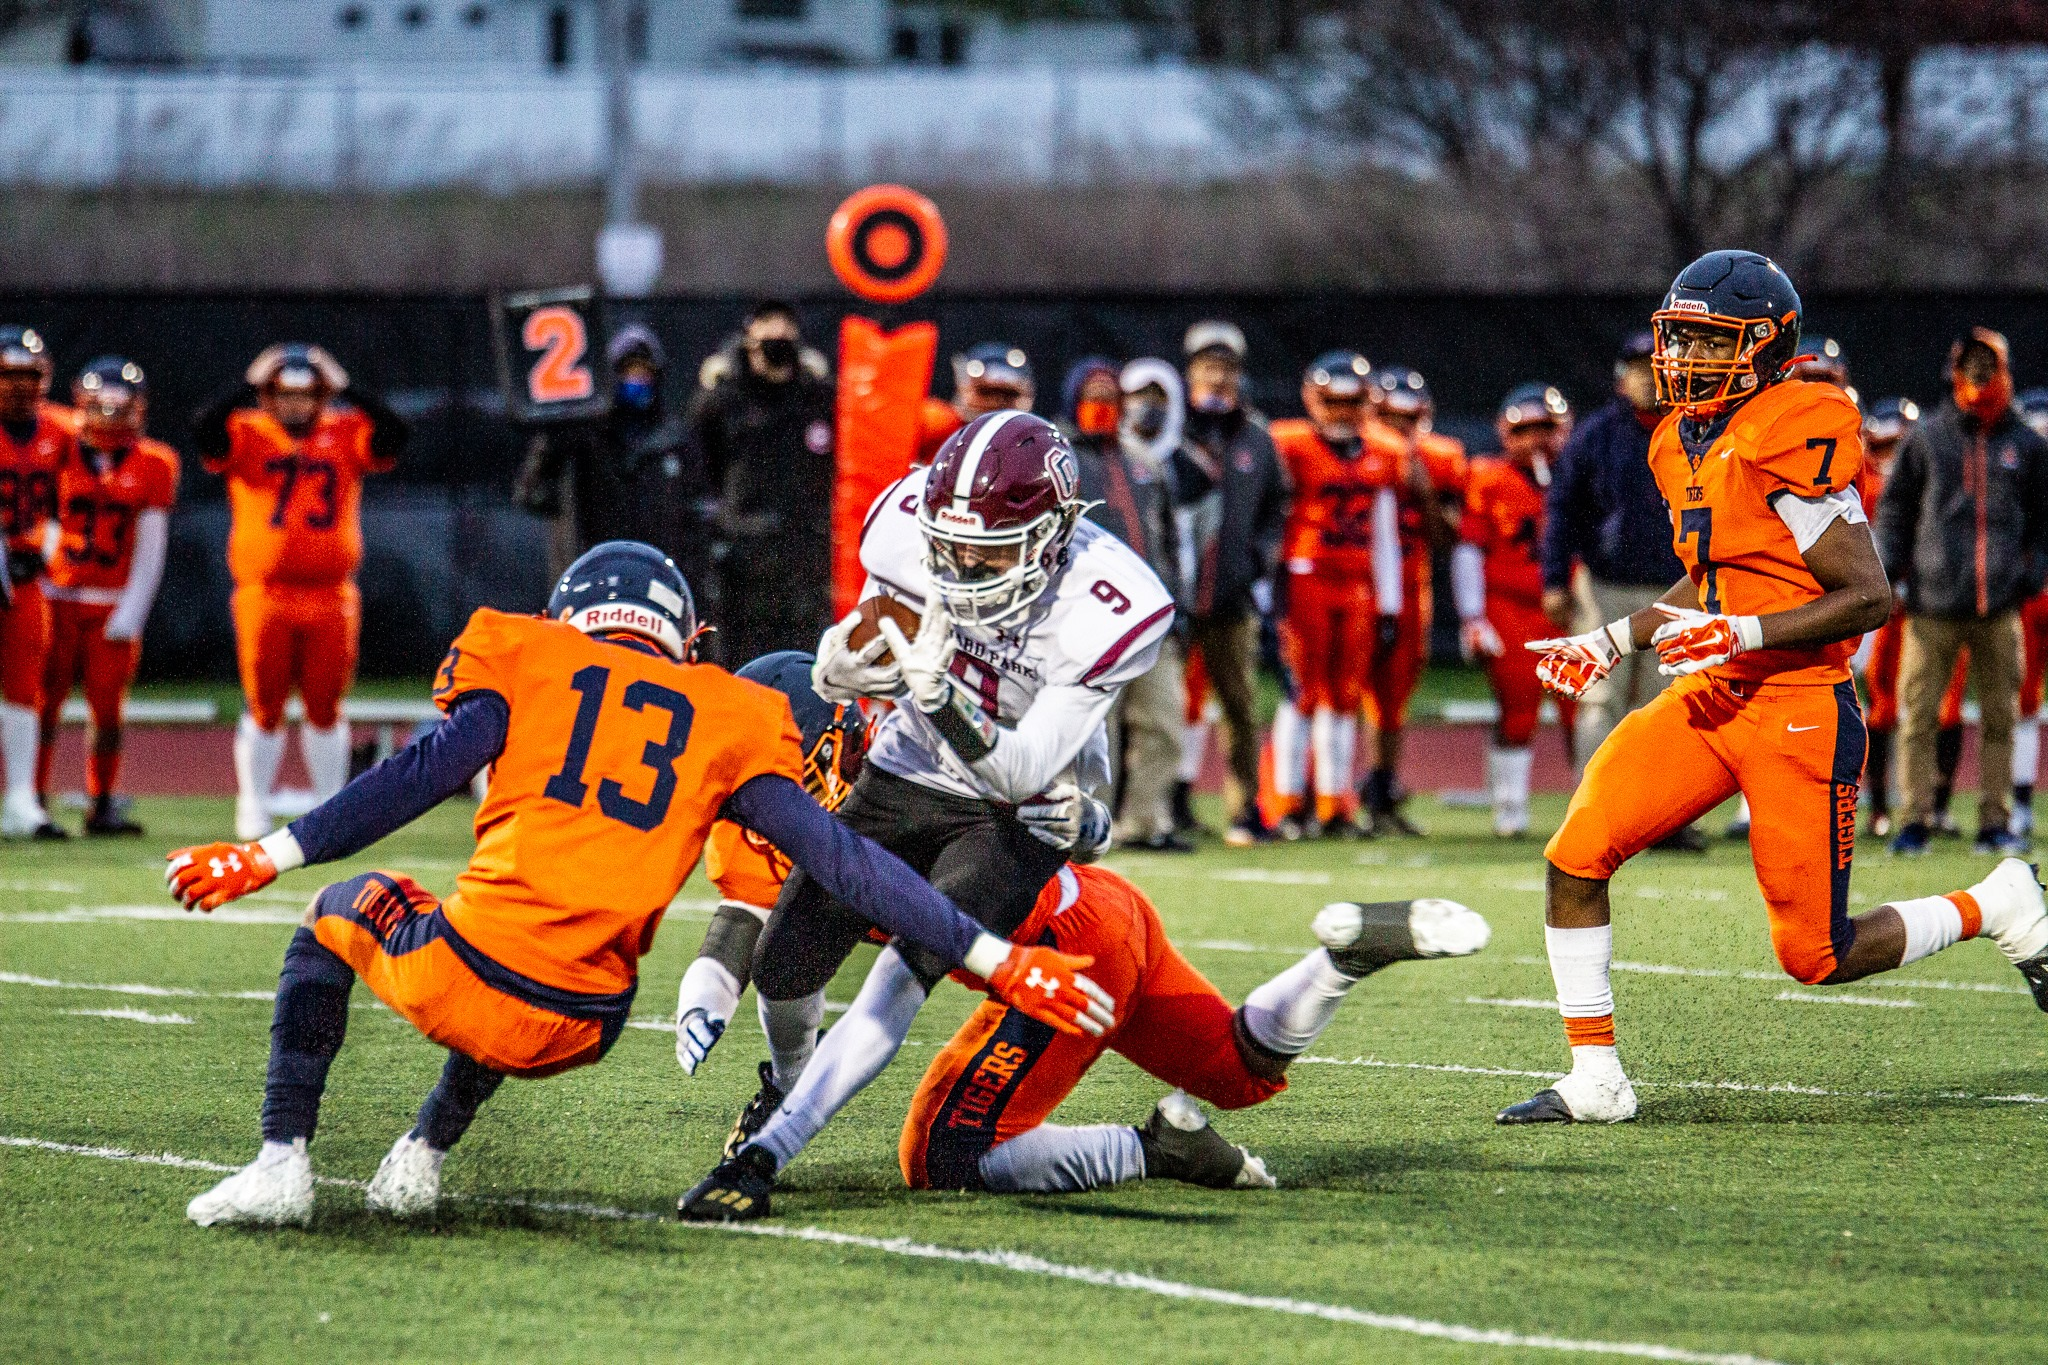 Section VI Football Championship preview